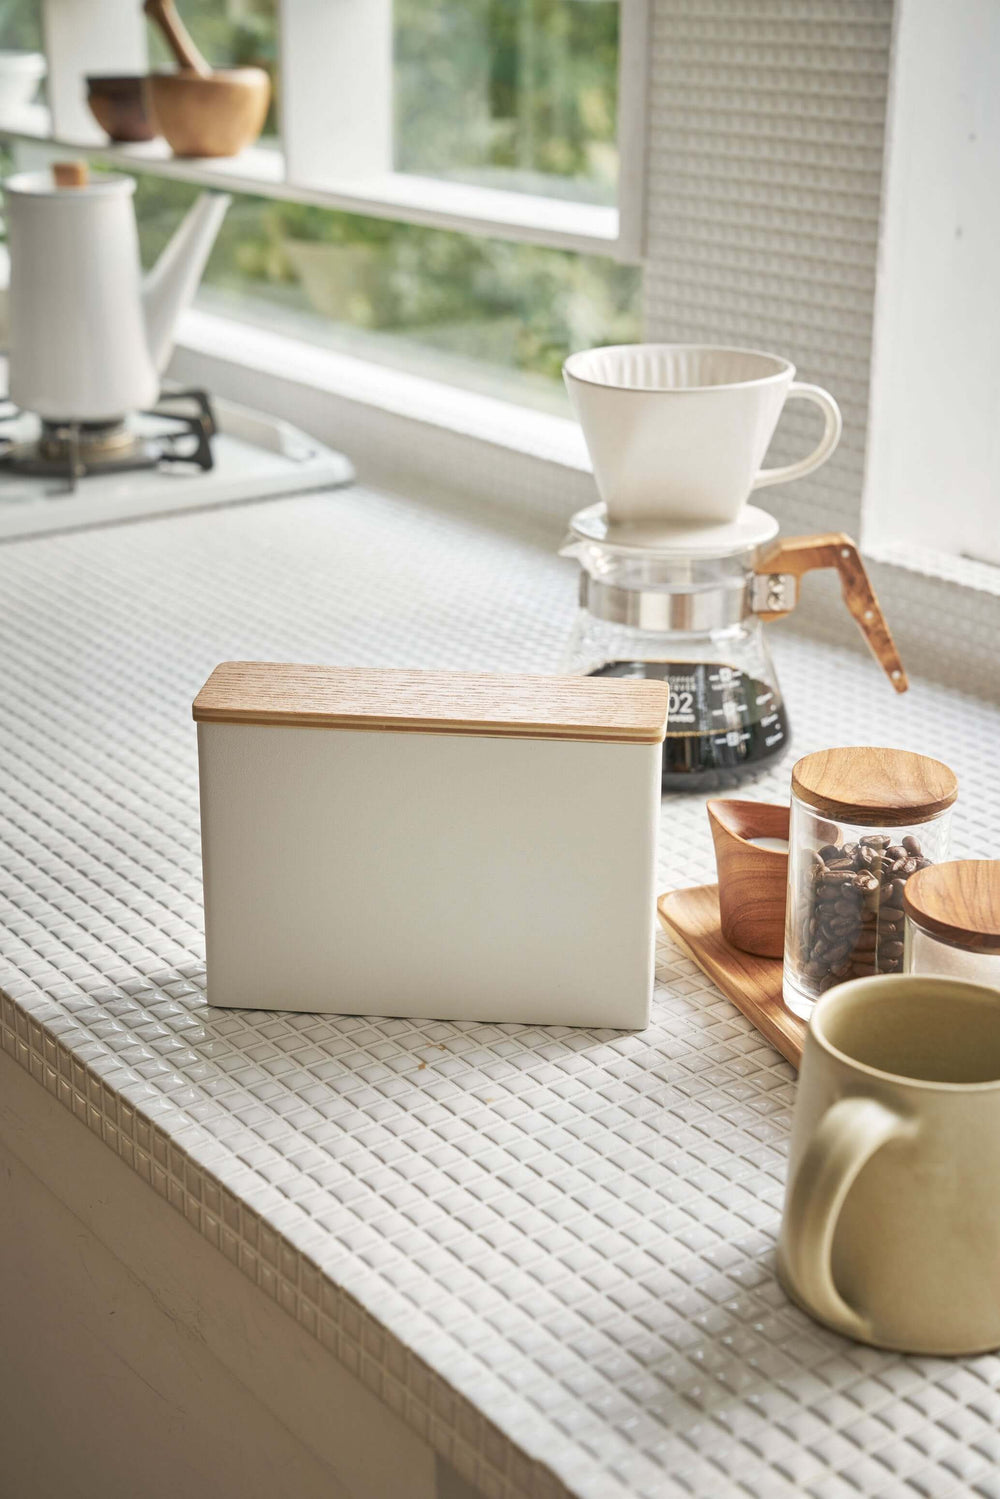 Yamazaki Wood-Accent Coffee Filter Case sitting closed on a white tile kitchen countertop, with coffee-making items